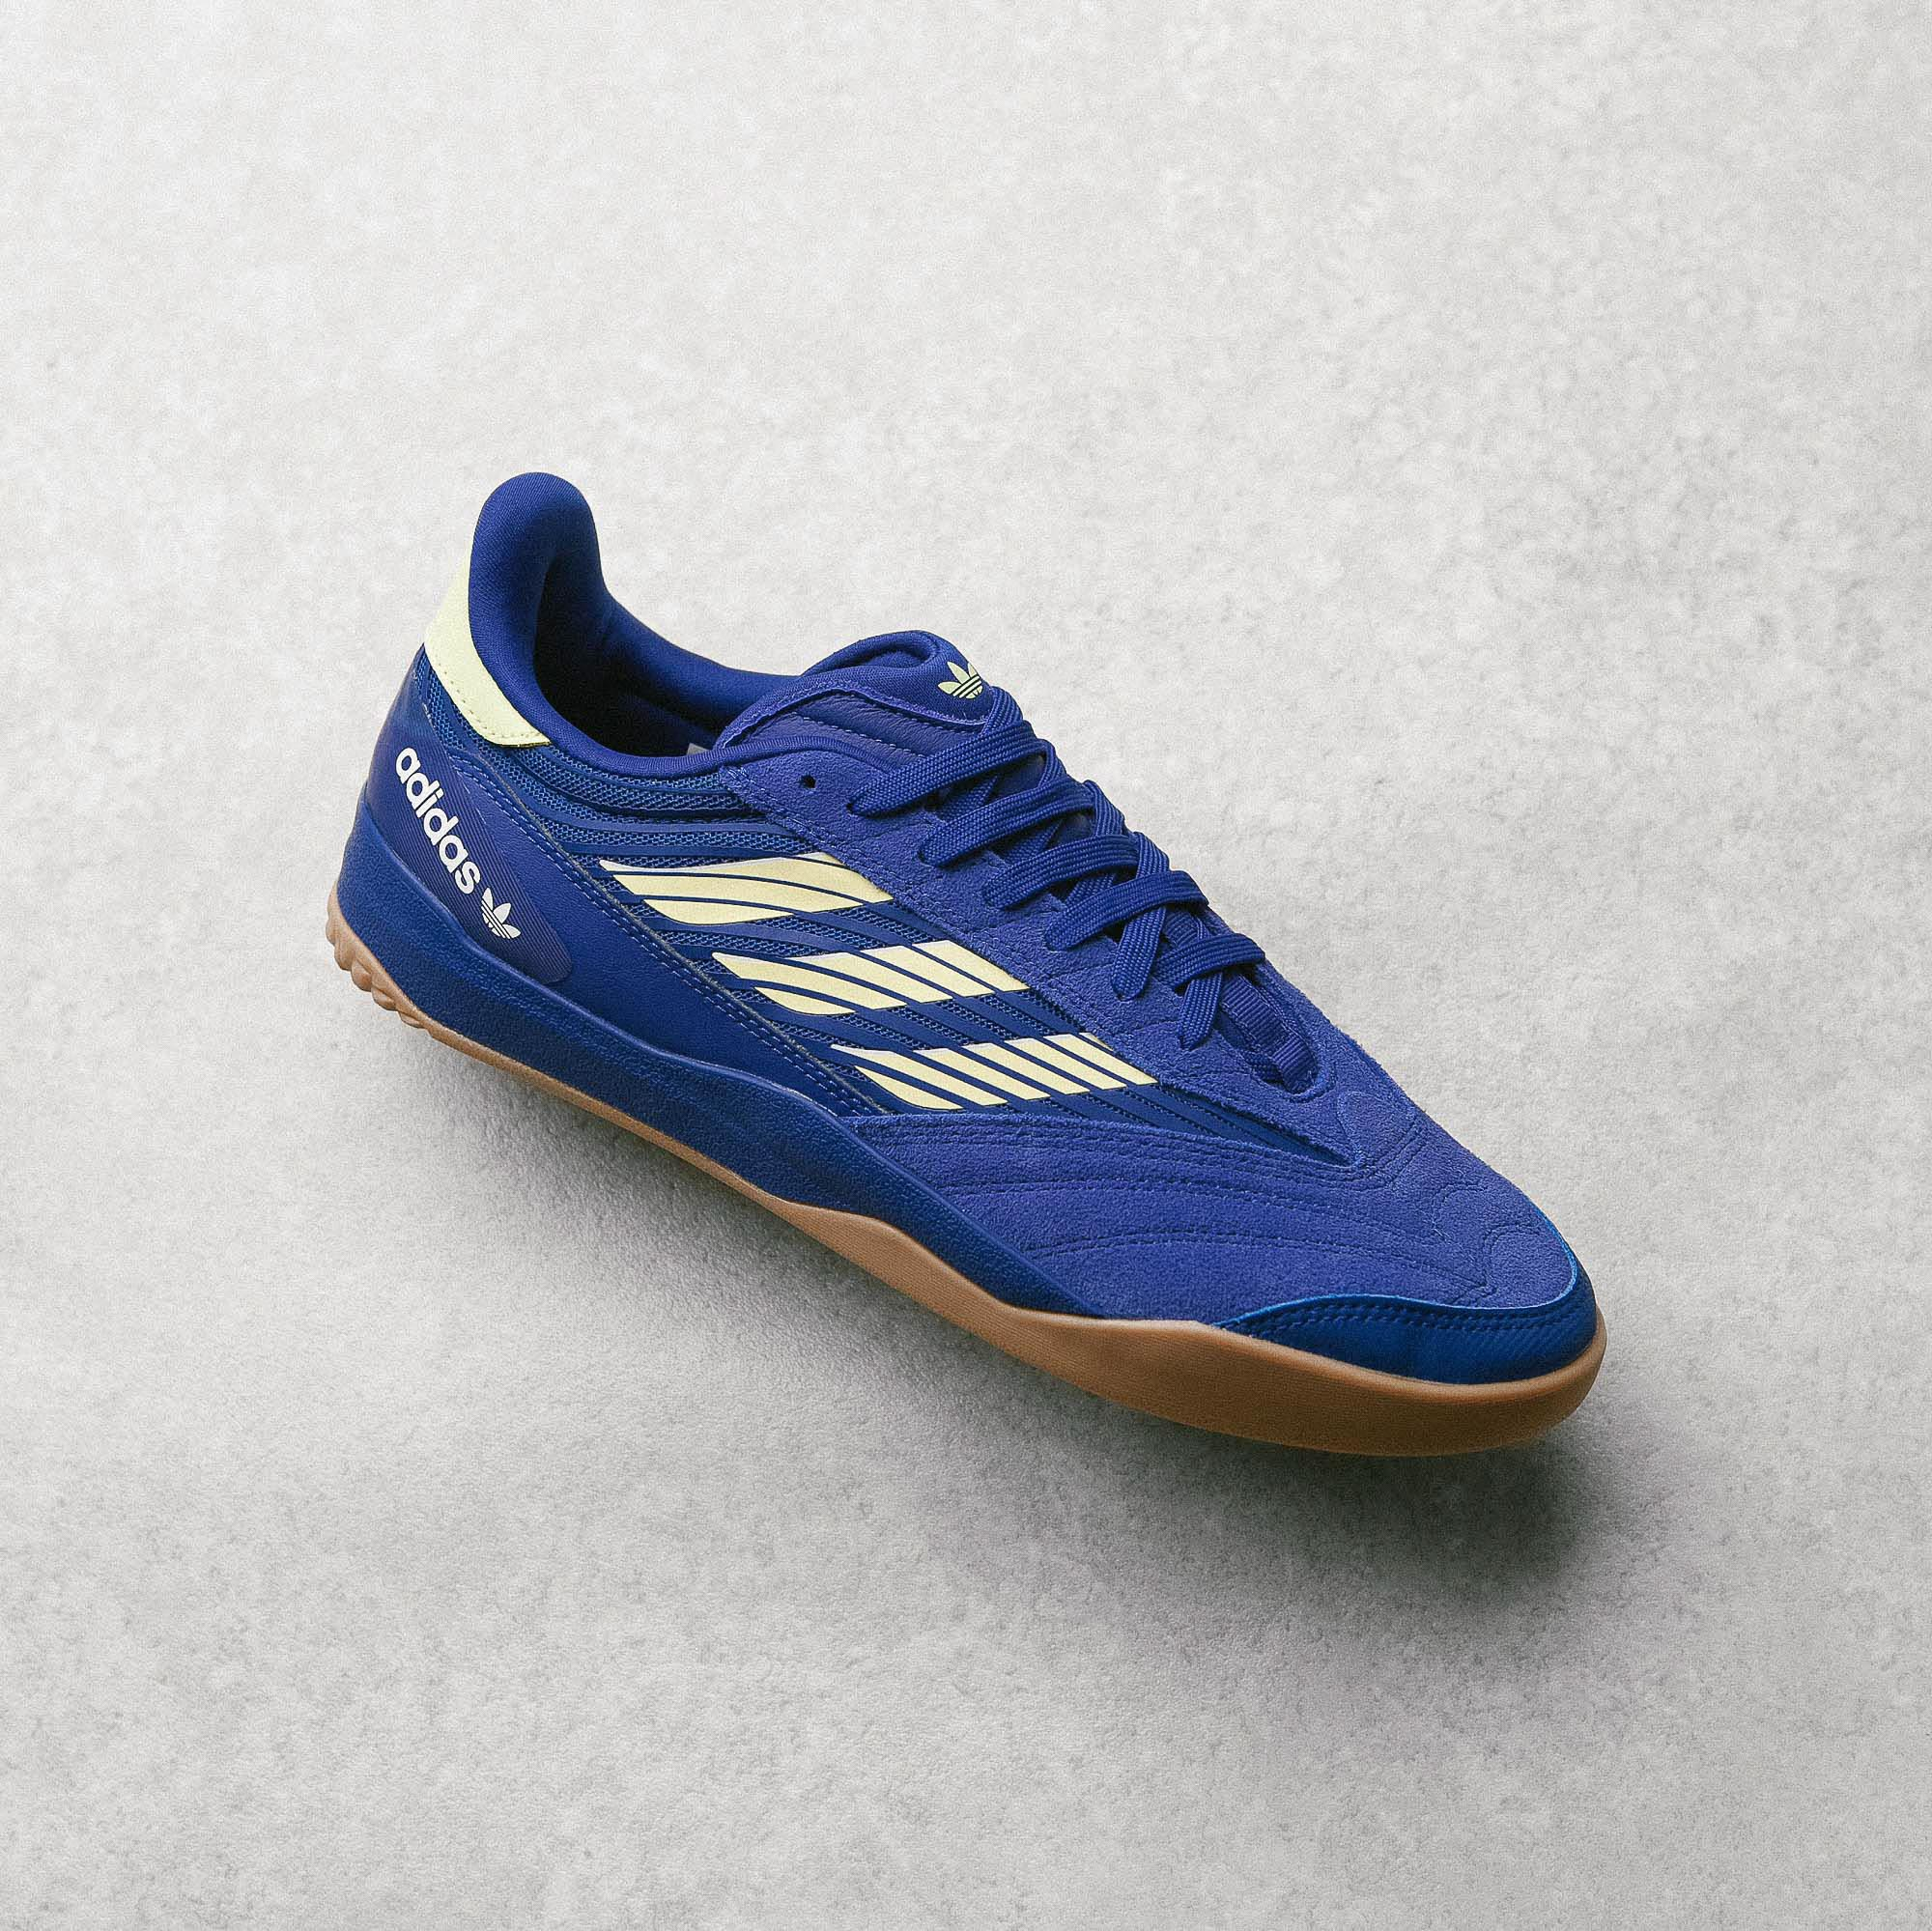 Introducing: The adidas Copa Nationale | Flatspot